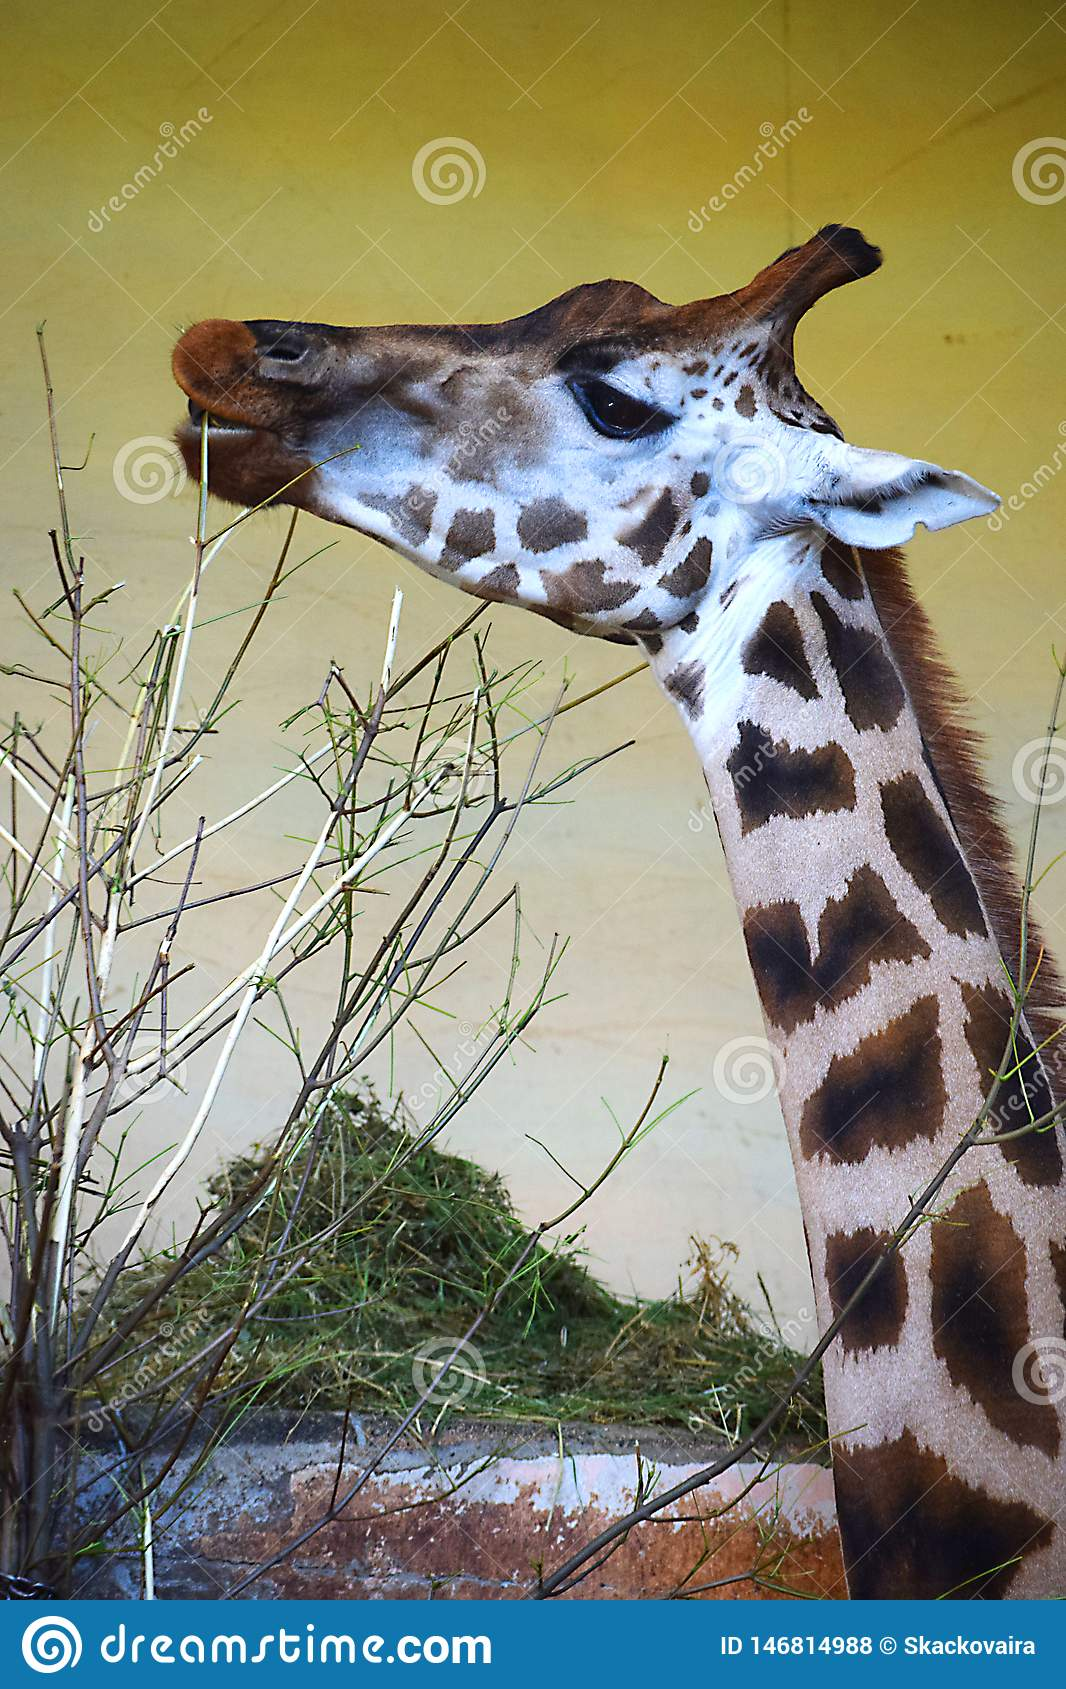 Giraffe with a branch at the zoo